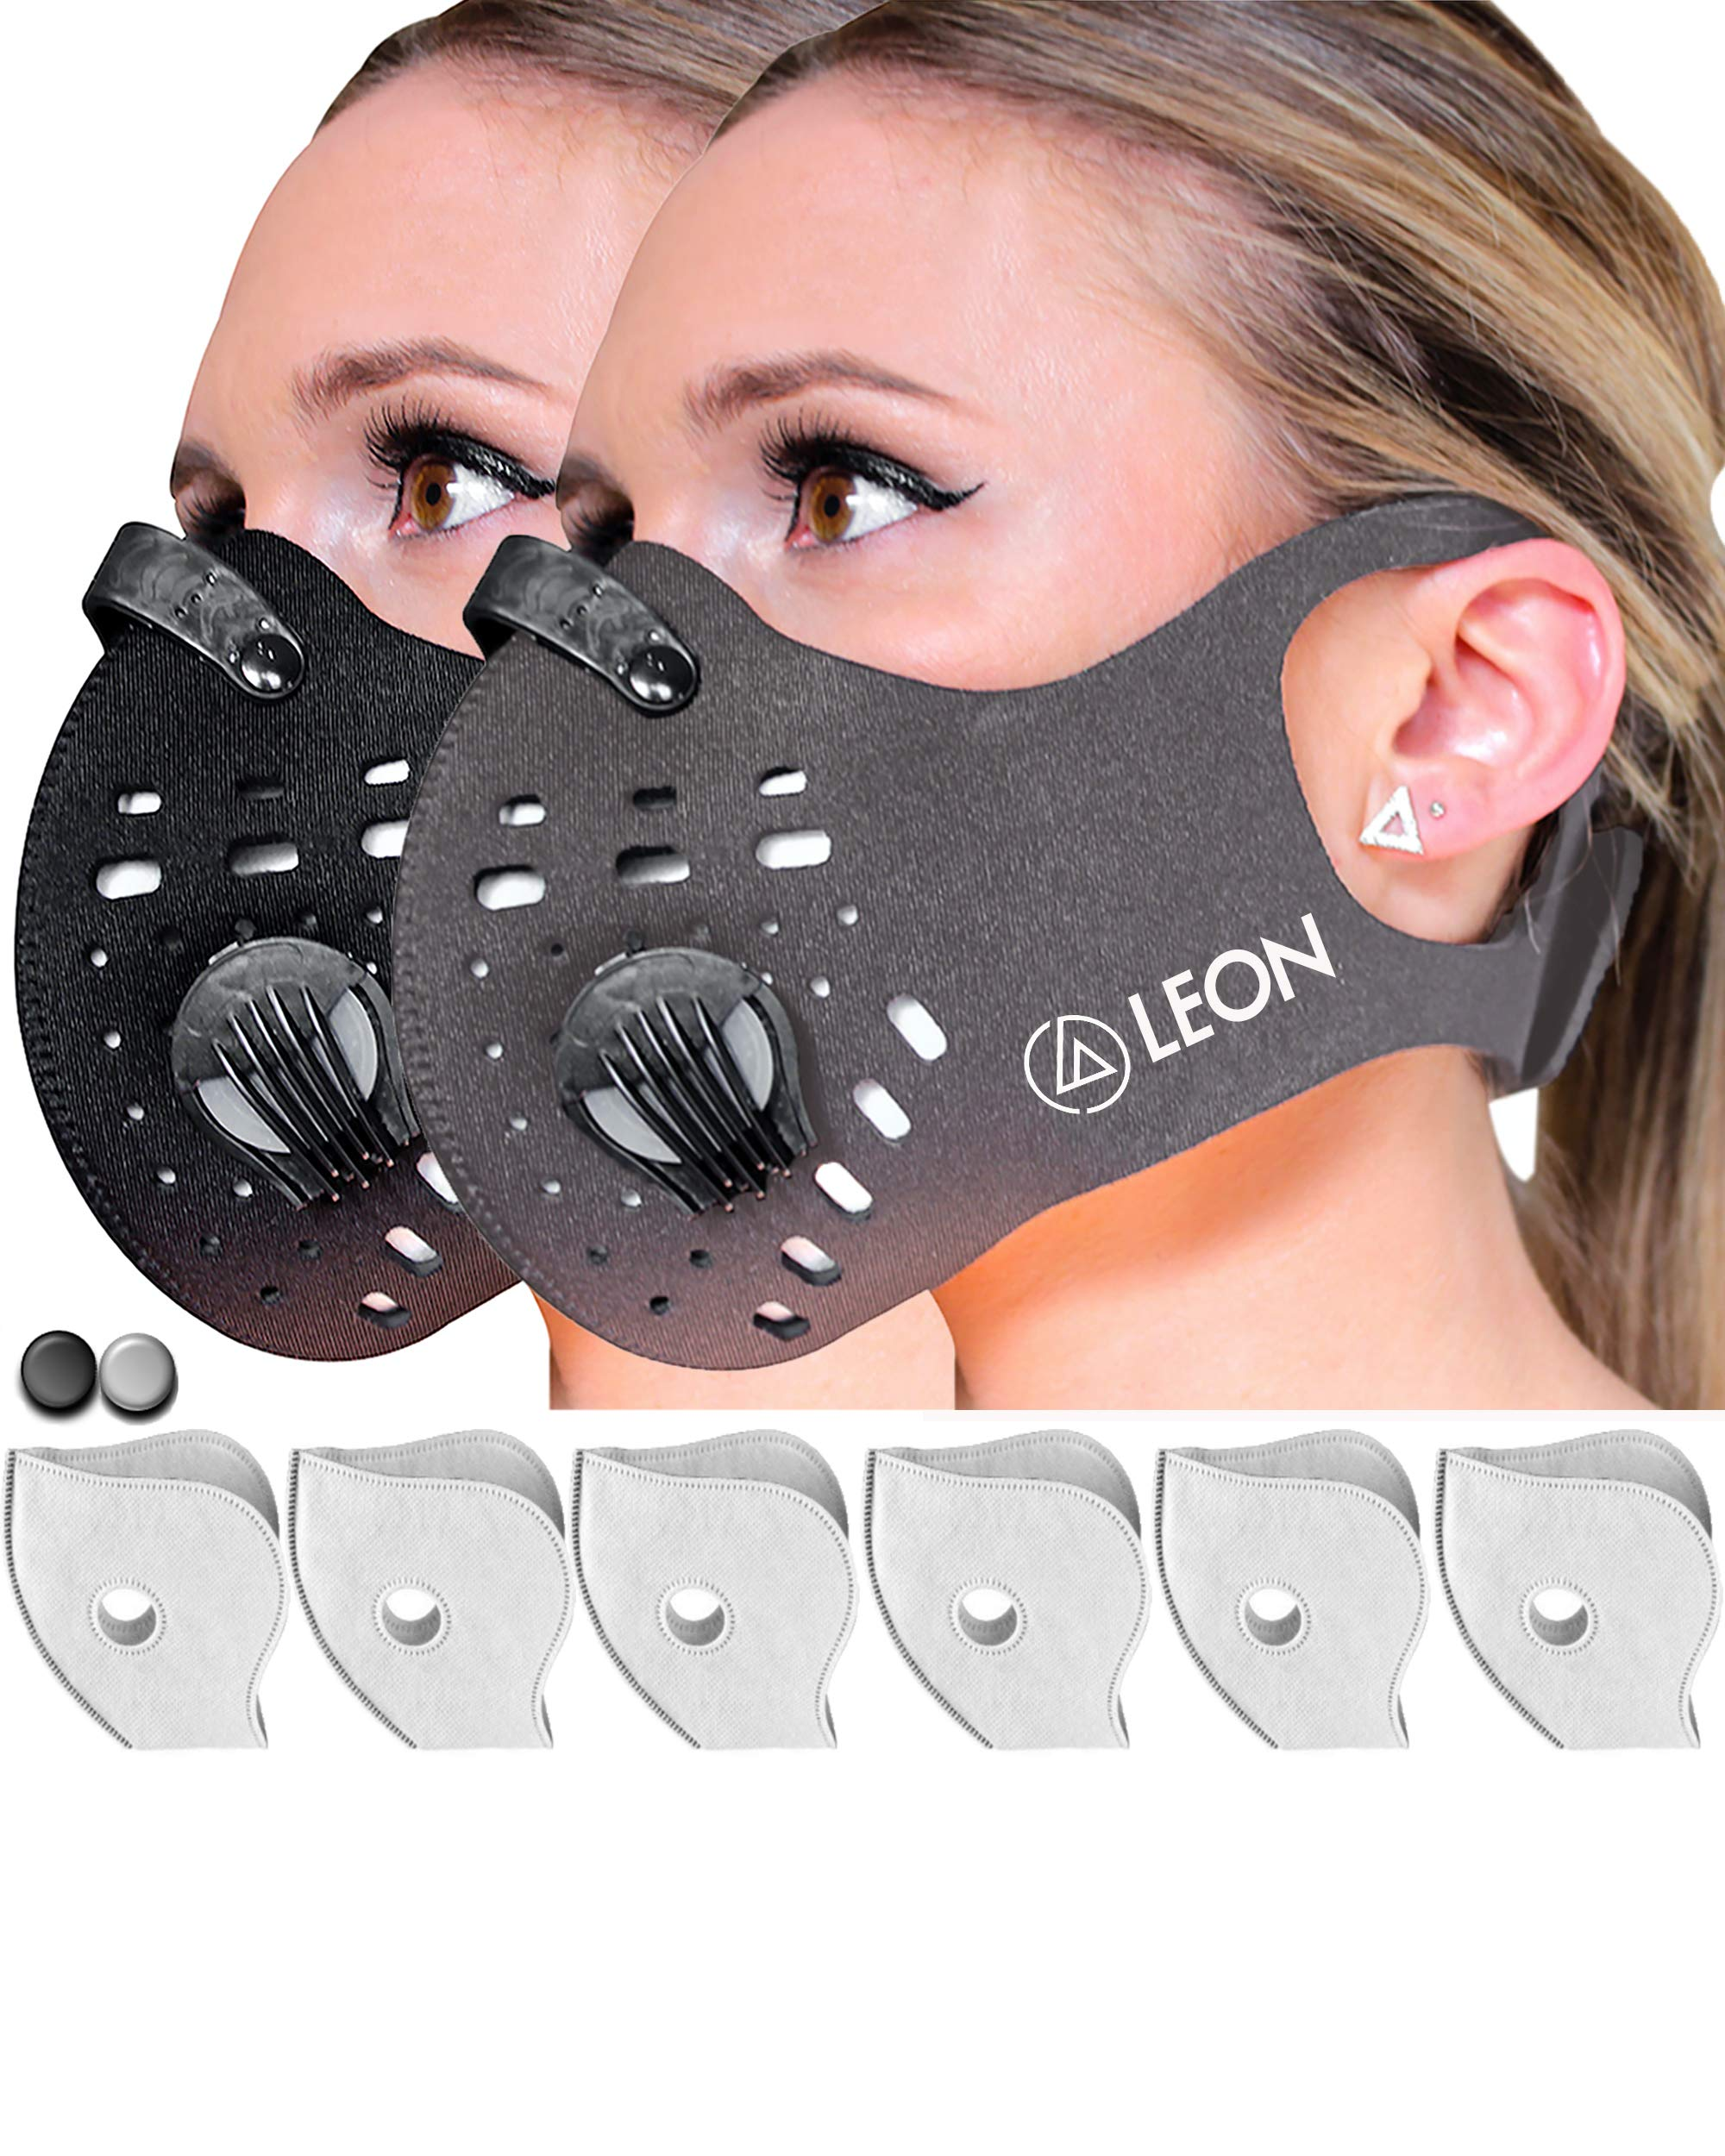 (1Black&1Grey) Leon N99 Dust Masks with 6 Carbon Activated Filters | Reusable Washable Anti Dust Mask | Non Slip Safety Mask | Dustproof Anti Pollution Smoke | Mowing Woodworking Allergy by Reformul8